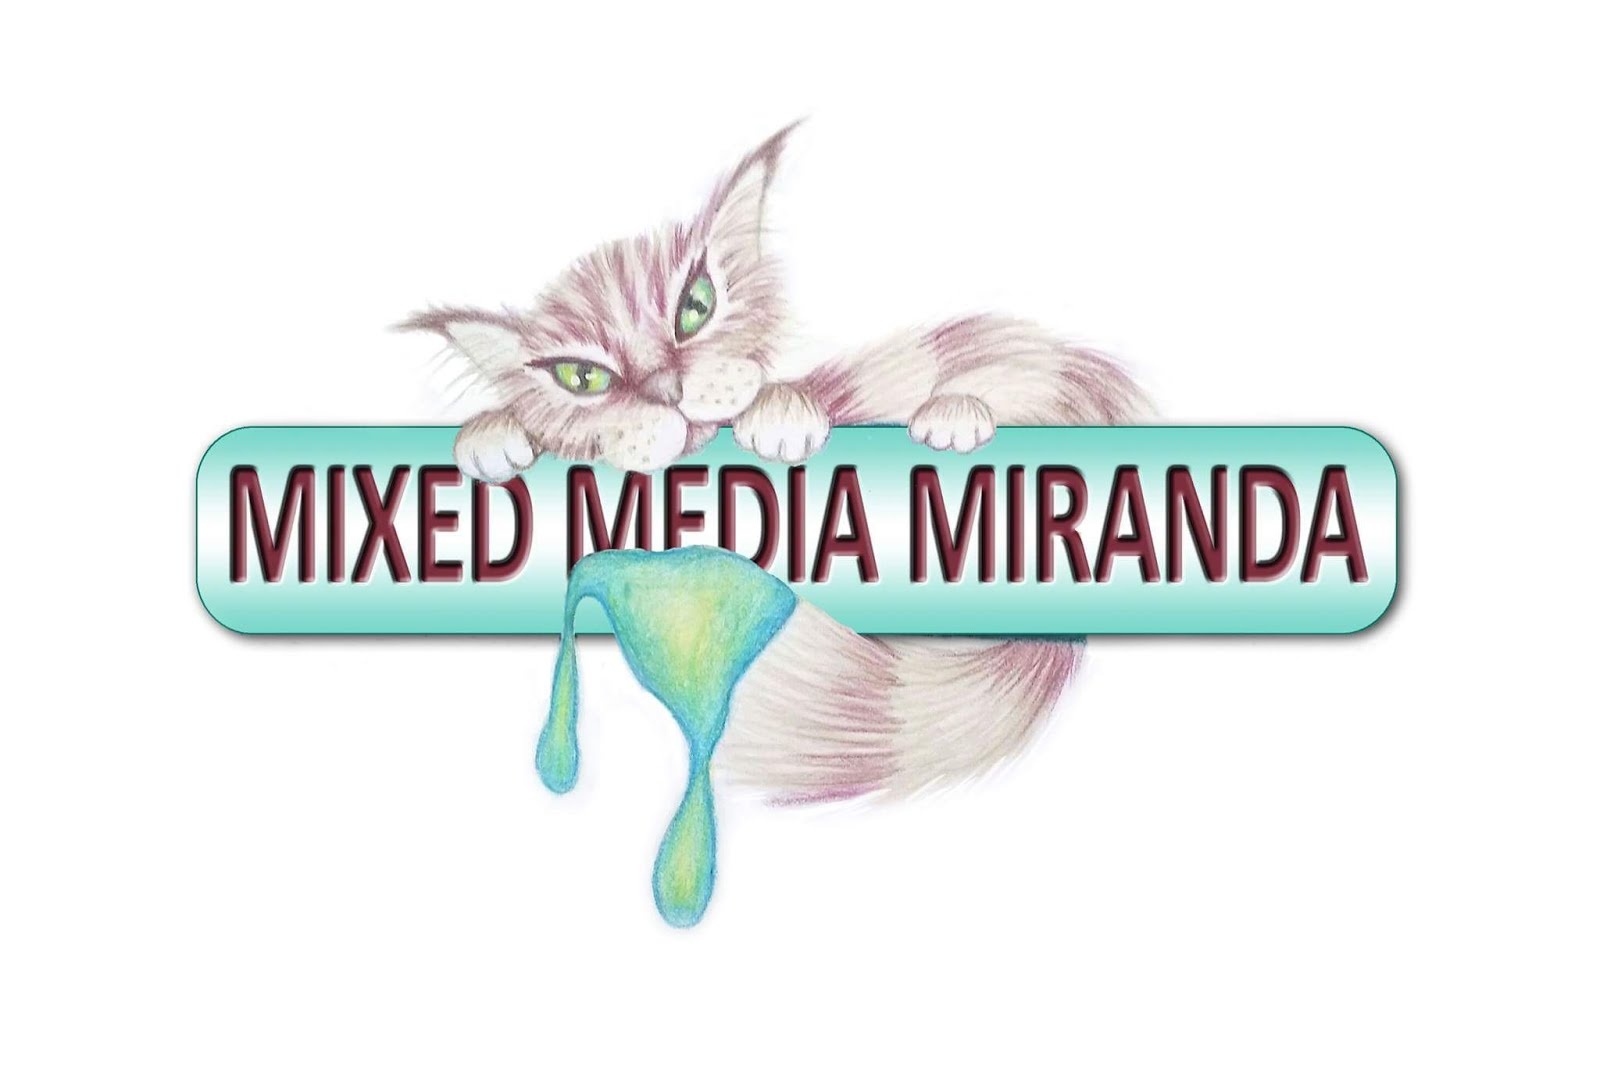 Mixed Media Miranda